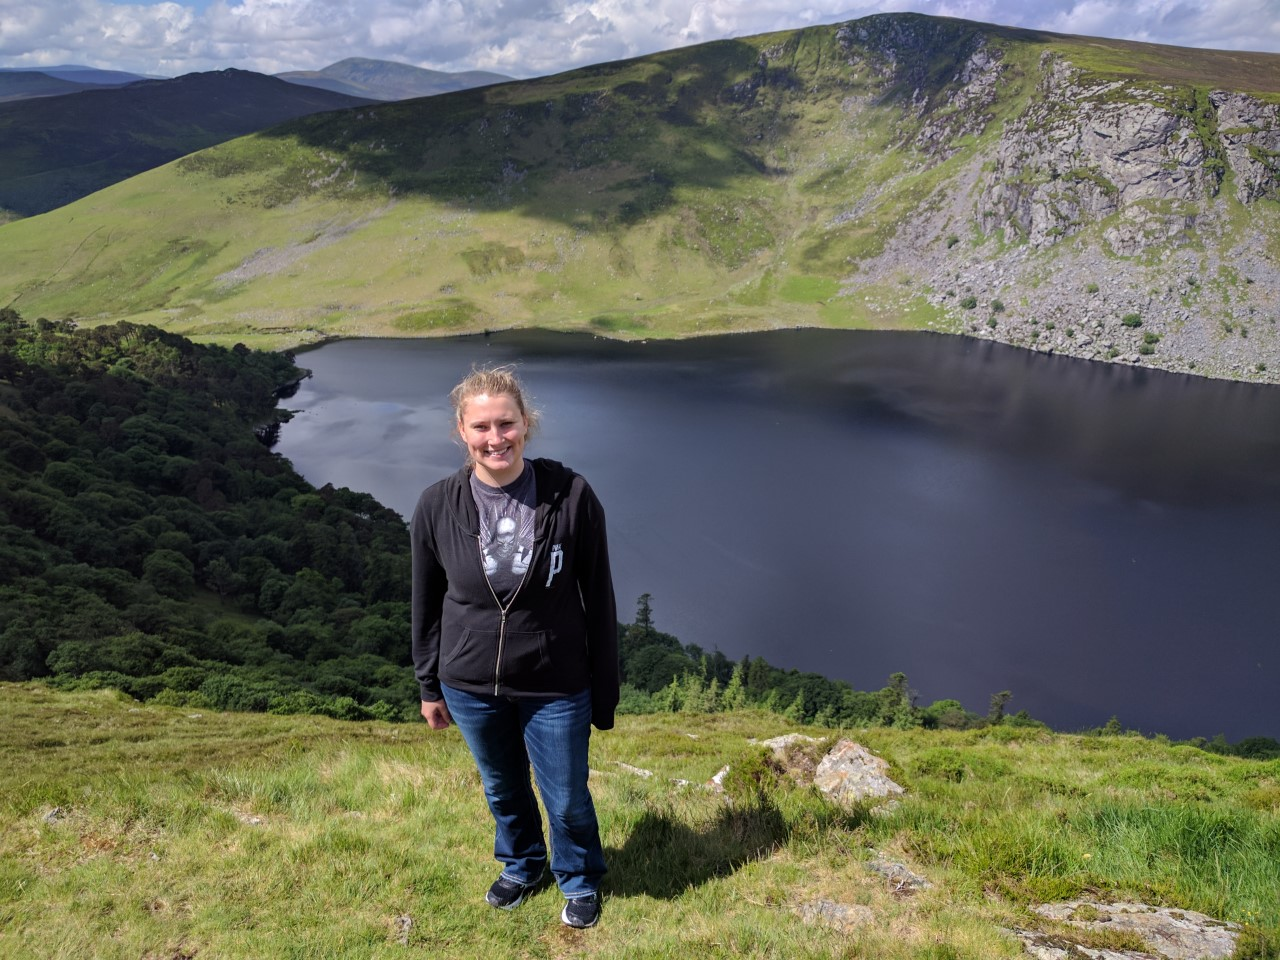 Haley Bailey ('18 political science and criminal justice) took part in the intern abroad program in Dublin, Ireland. This photo was taken at Lough Tay (Guinness Lake) in County Wicklow, Ireland.